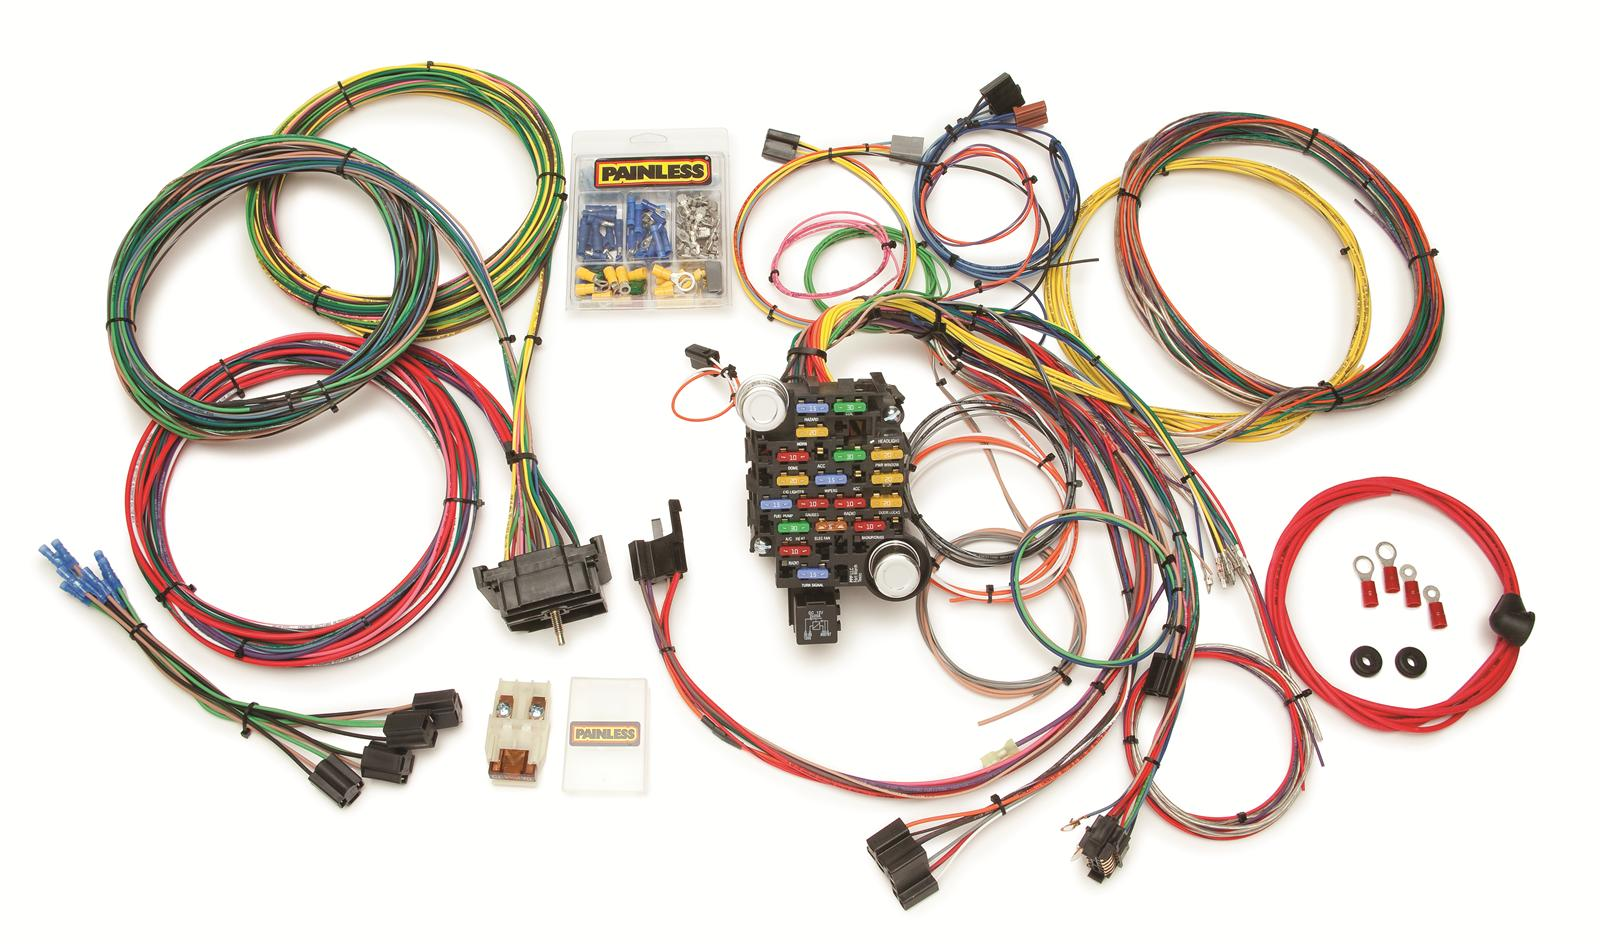 prf 10206_xl painless performance gmc chevy truck harnesses 10206 free painless wiring harness rebate at gsmx.co